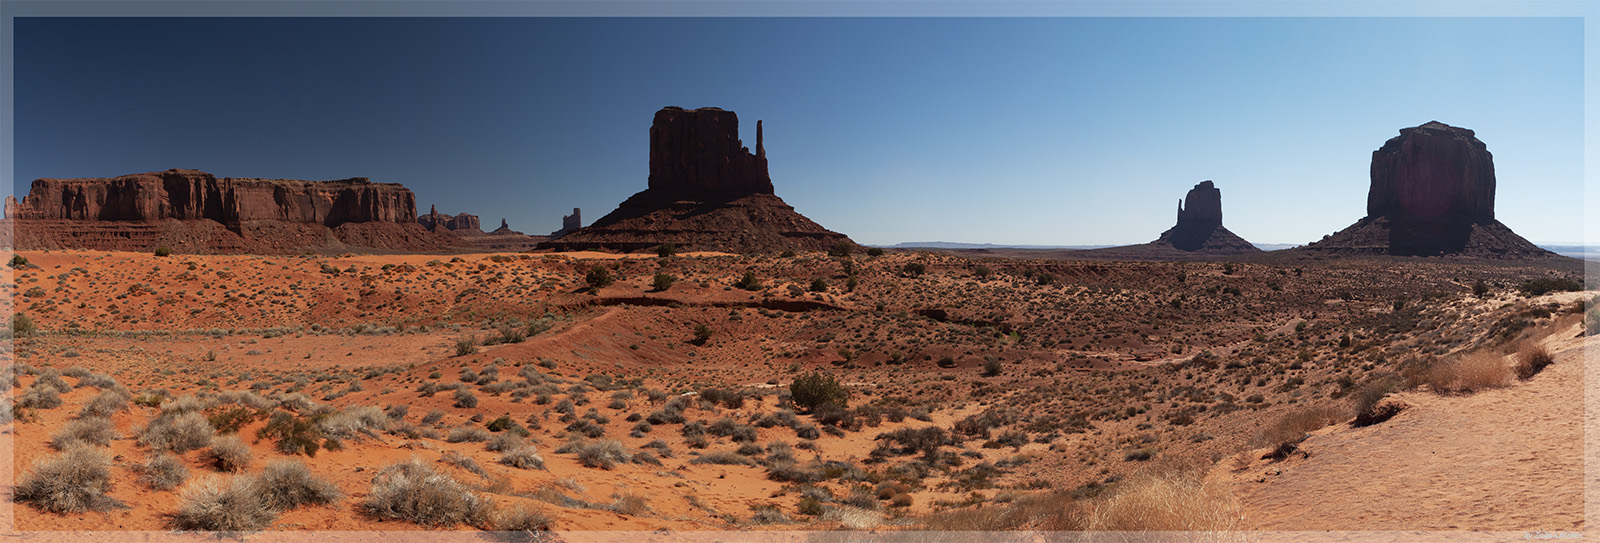 monument_valley_pan_kicsi.jpg